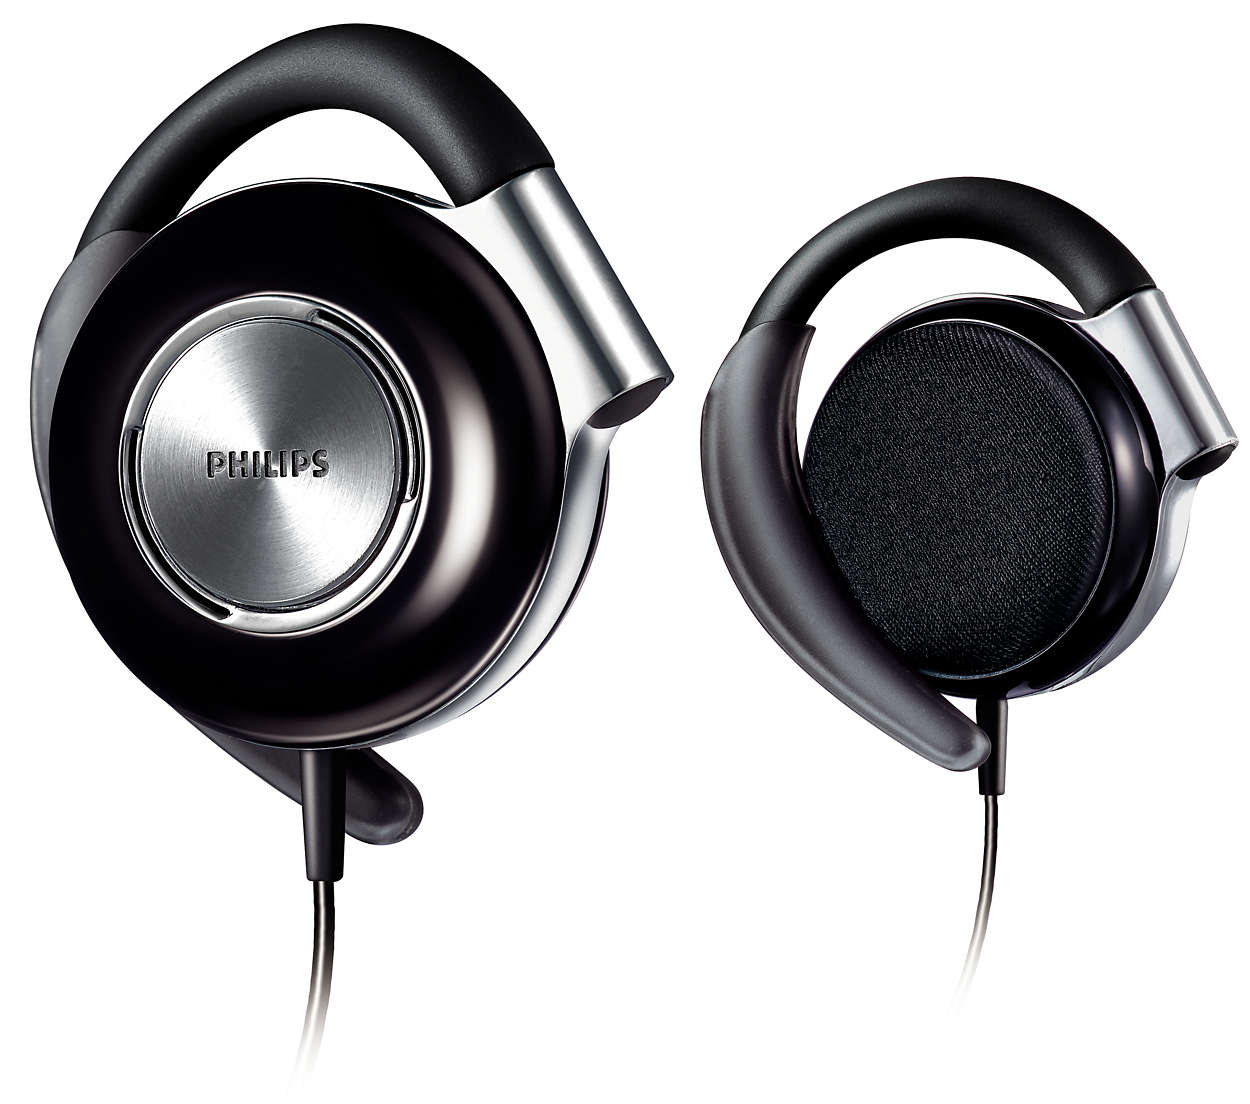 ear clip headphones shs4700 28 philips. Black Bedroom Furniture Sets. Home Design Ideas